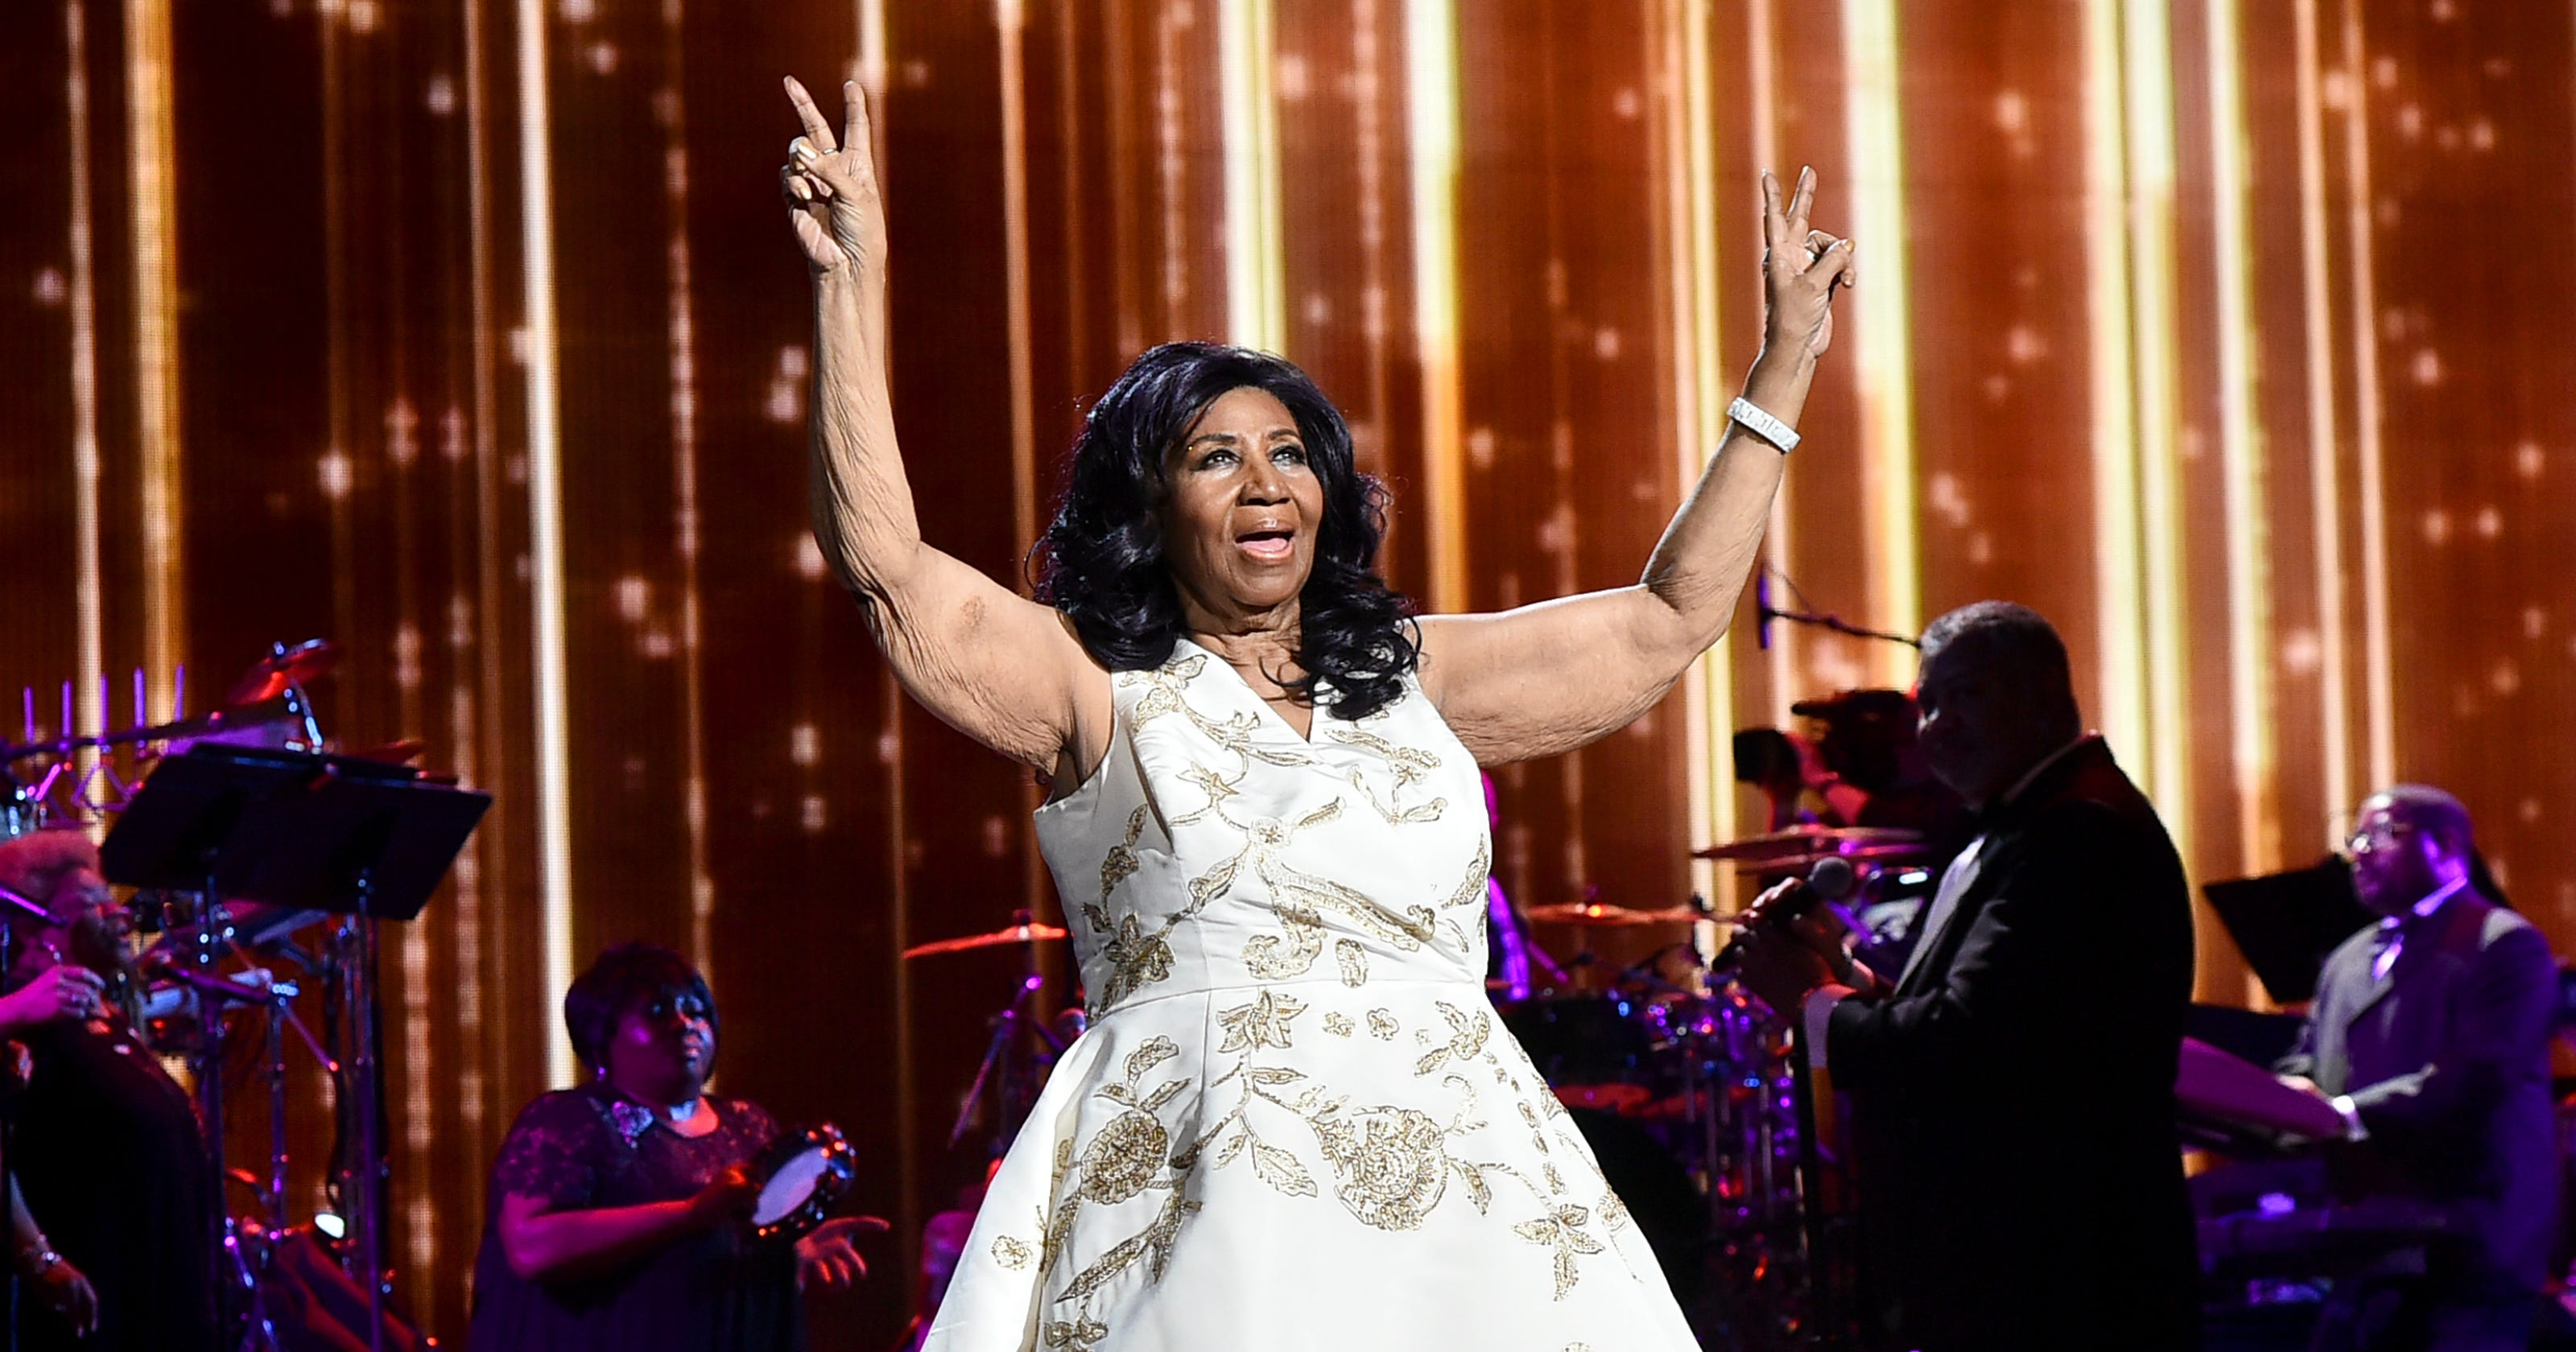 Pancreatic cancer killed Aretha Franklin and scores of other celebs. Why?